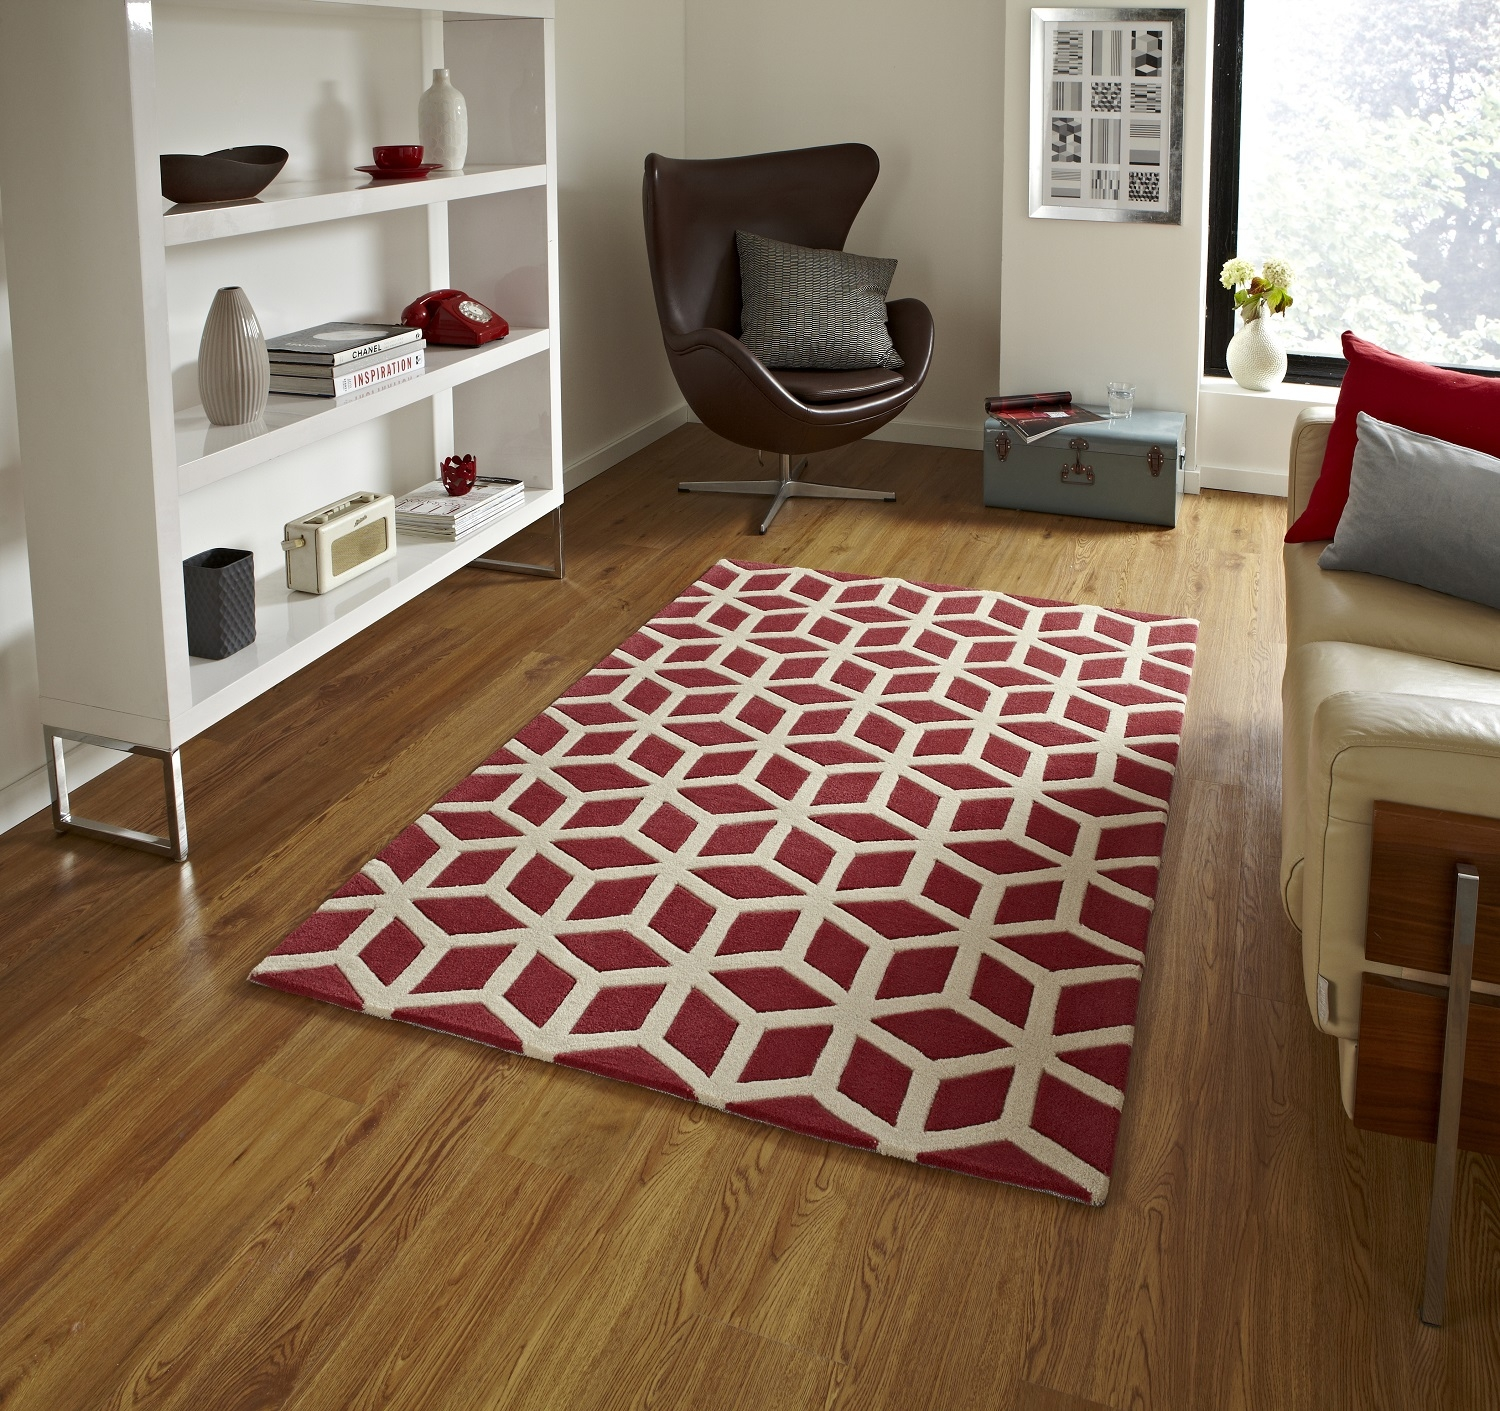 Modern Floor Rugs Regarding Large Geometric Rugs (View 11 of 15)